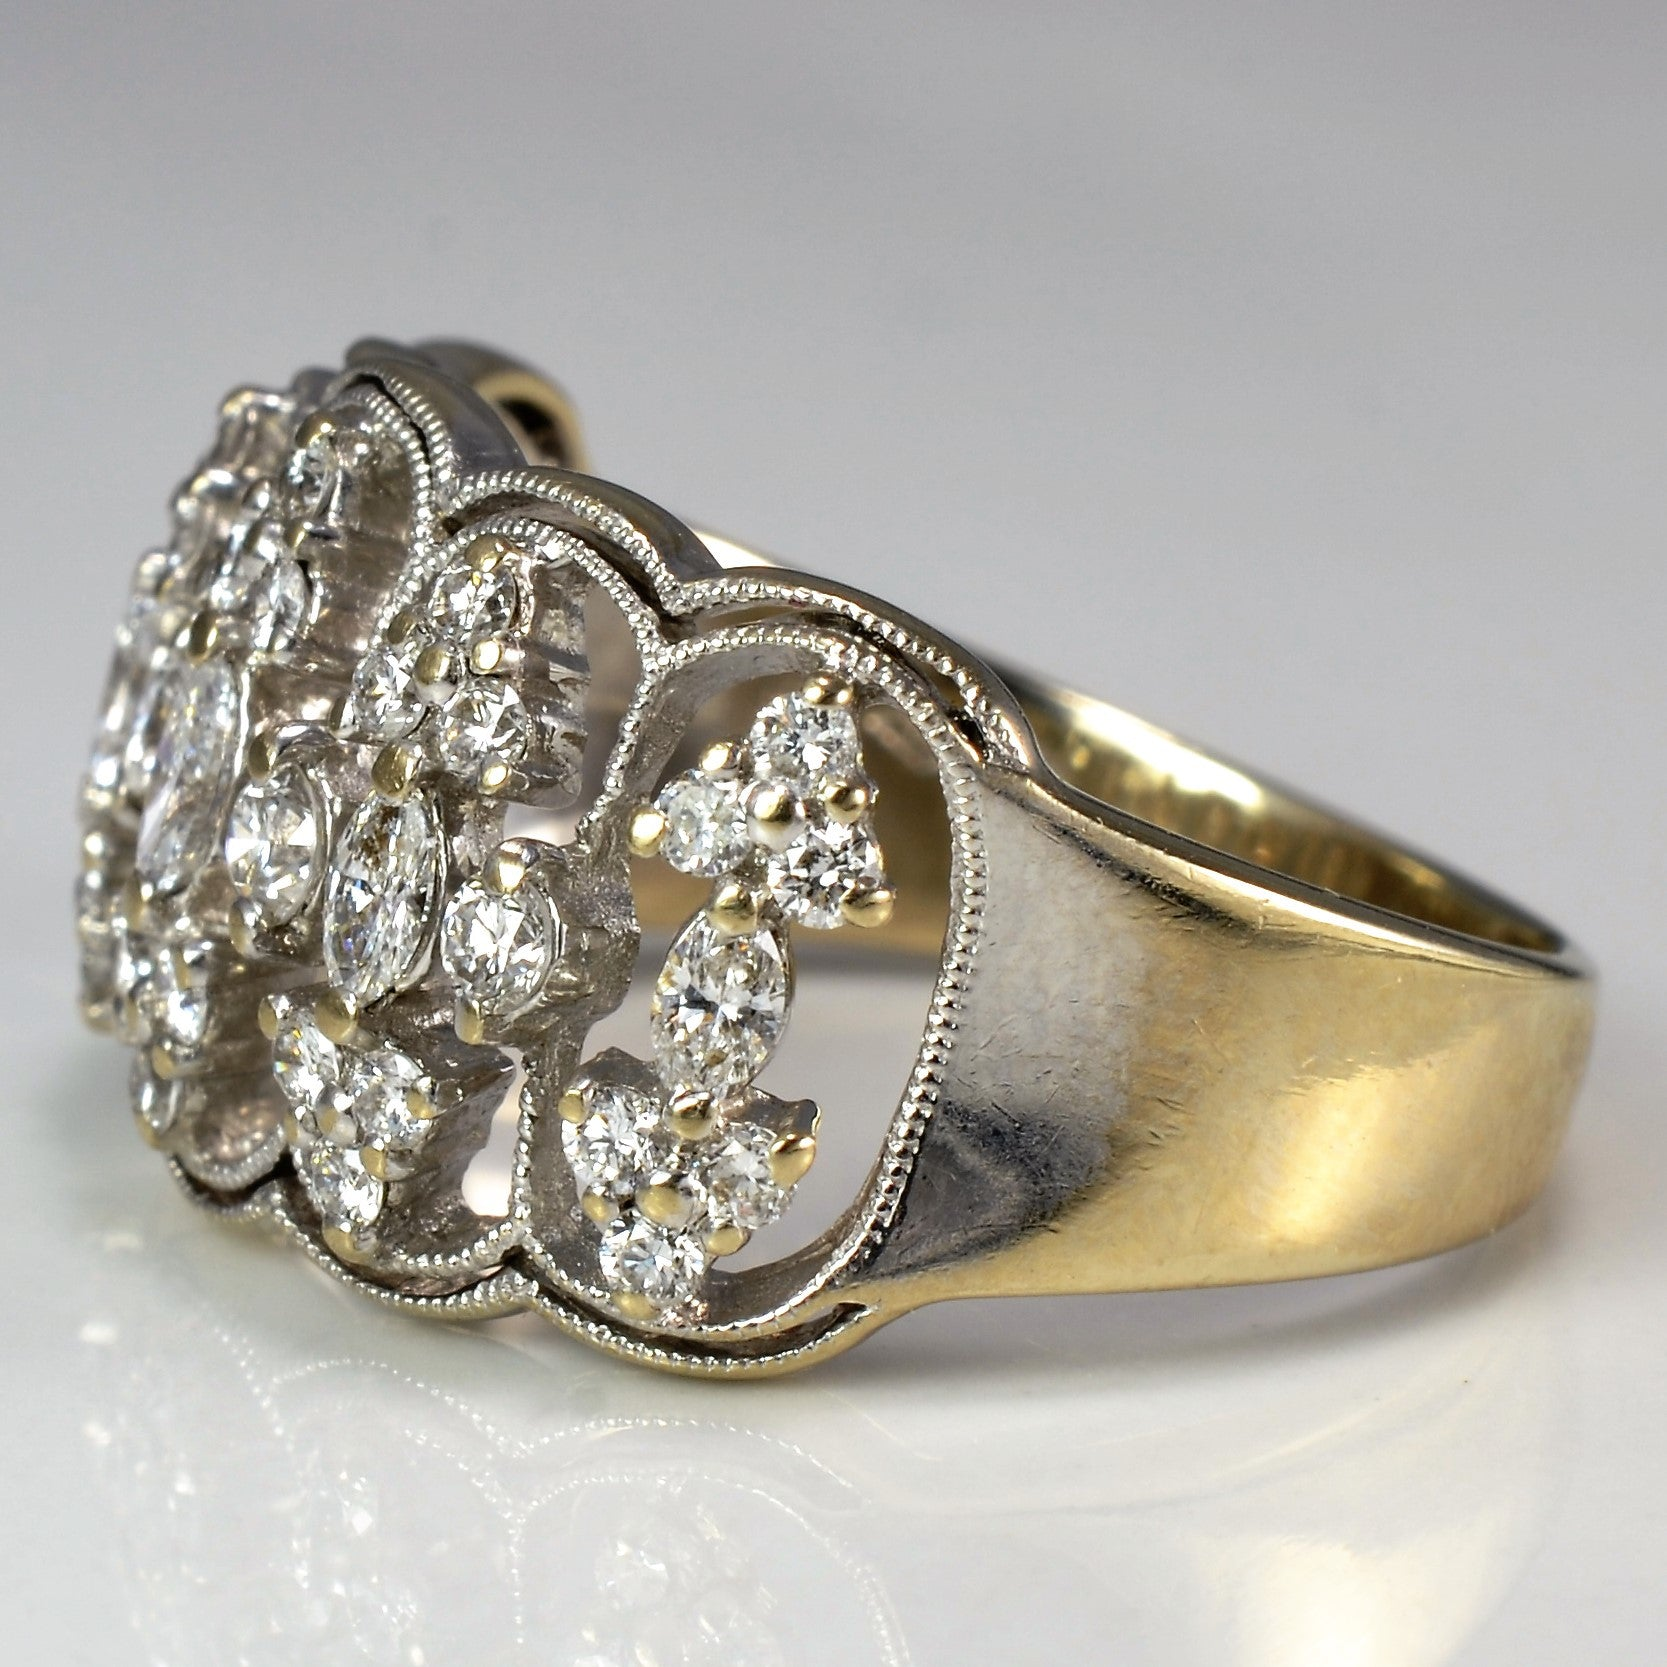 Vintage Milgrain Diamond Cocktail Ring | 1.00 ctw, SZ 8.75 |